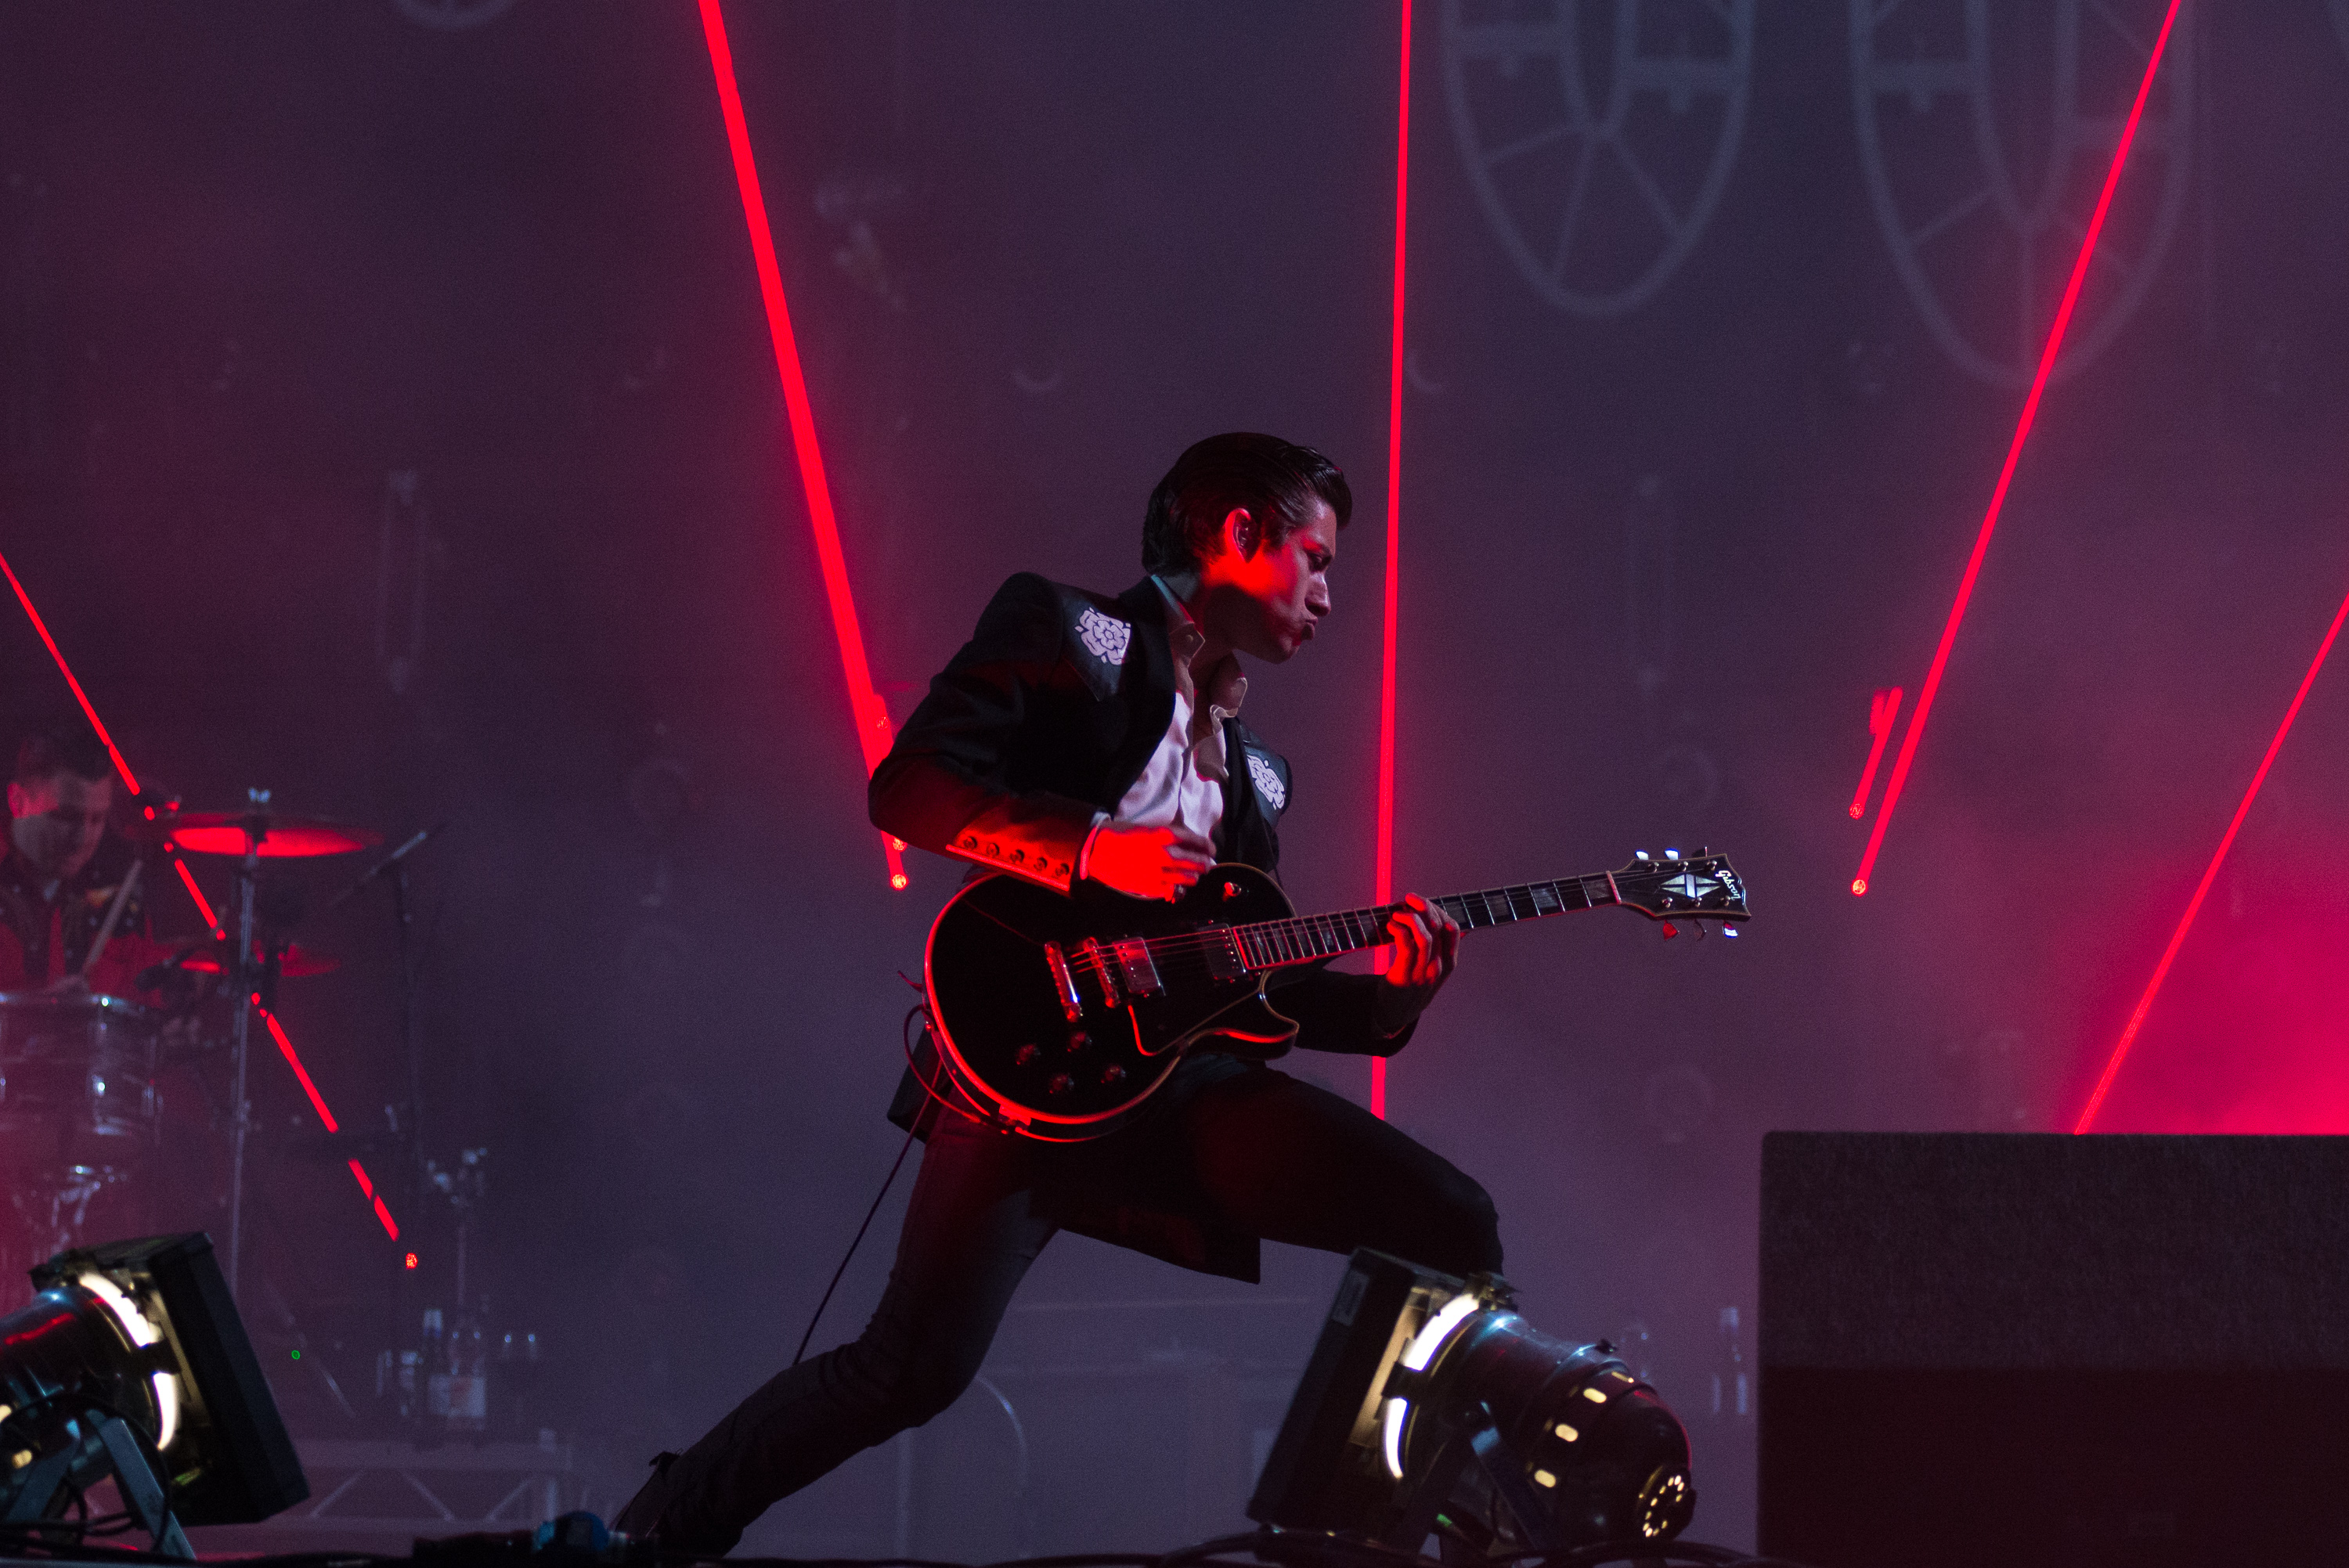 Arctic Monkeys join Eminem, Kendrick Lamar and The Killers as Firefly headliners. (Image: WENN.com)<p></p>